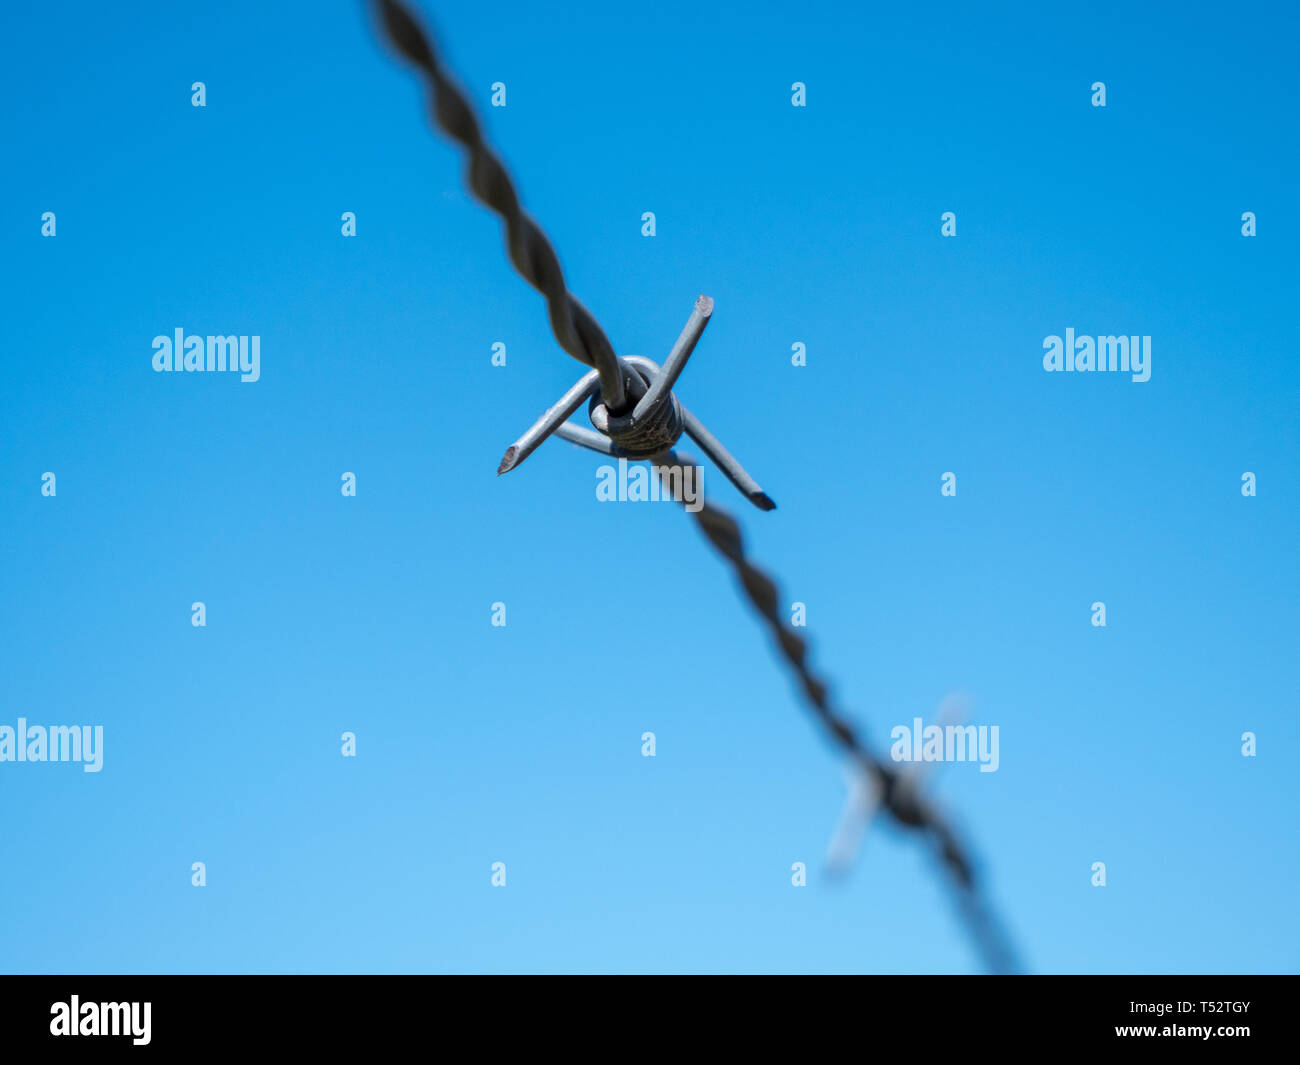 Barbed Wire Isolated on Blue Sky - A Concept for Security, Border Control, Migration Crisis - Stock Image